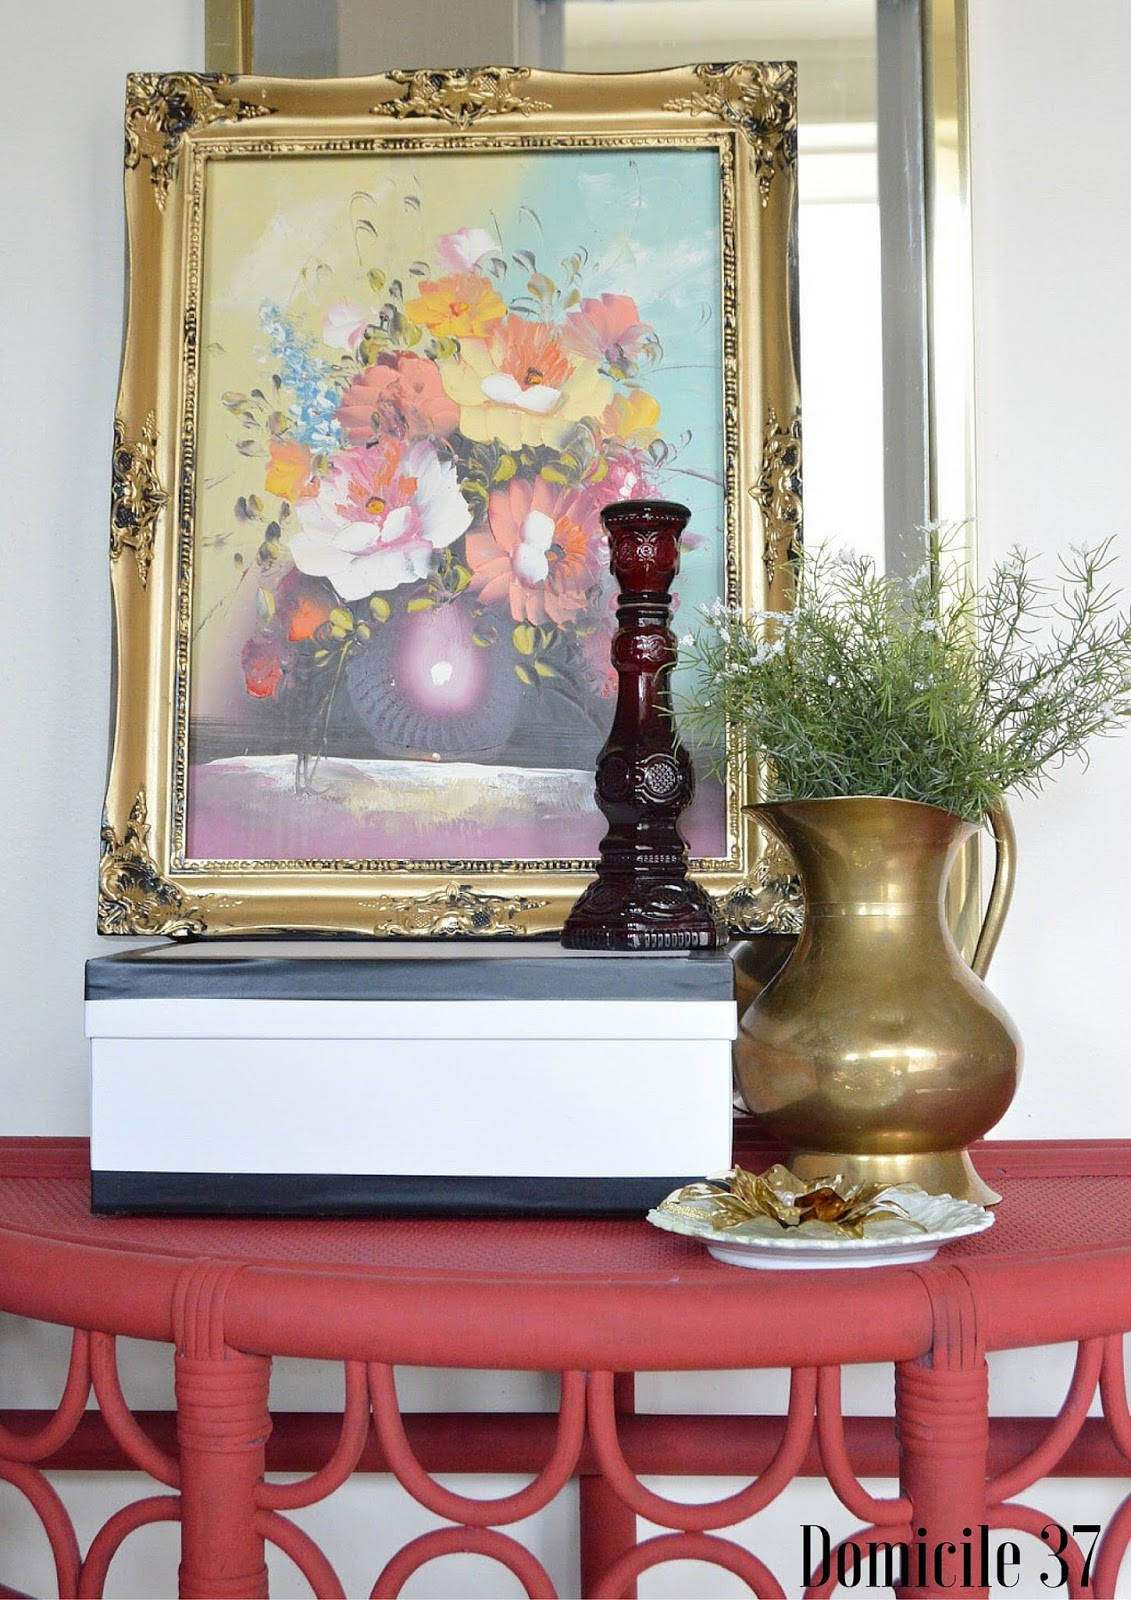 DecoArt Rouge, DecoArt Americana Chalk Paint, Chalk paint on Rattan, Painted Rattan, Foyer, Eclectic Decor, Small Foyer, Brass home decor, Vintage Eclectic, Mix and match home decor, Before and After painted rattan, Before and after painted furniture